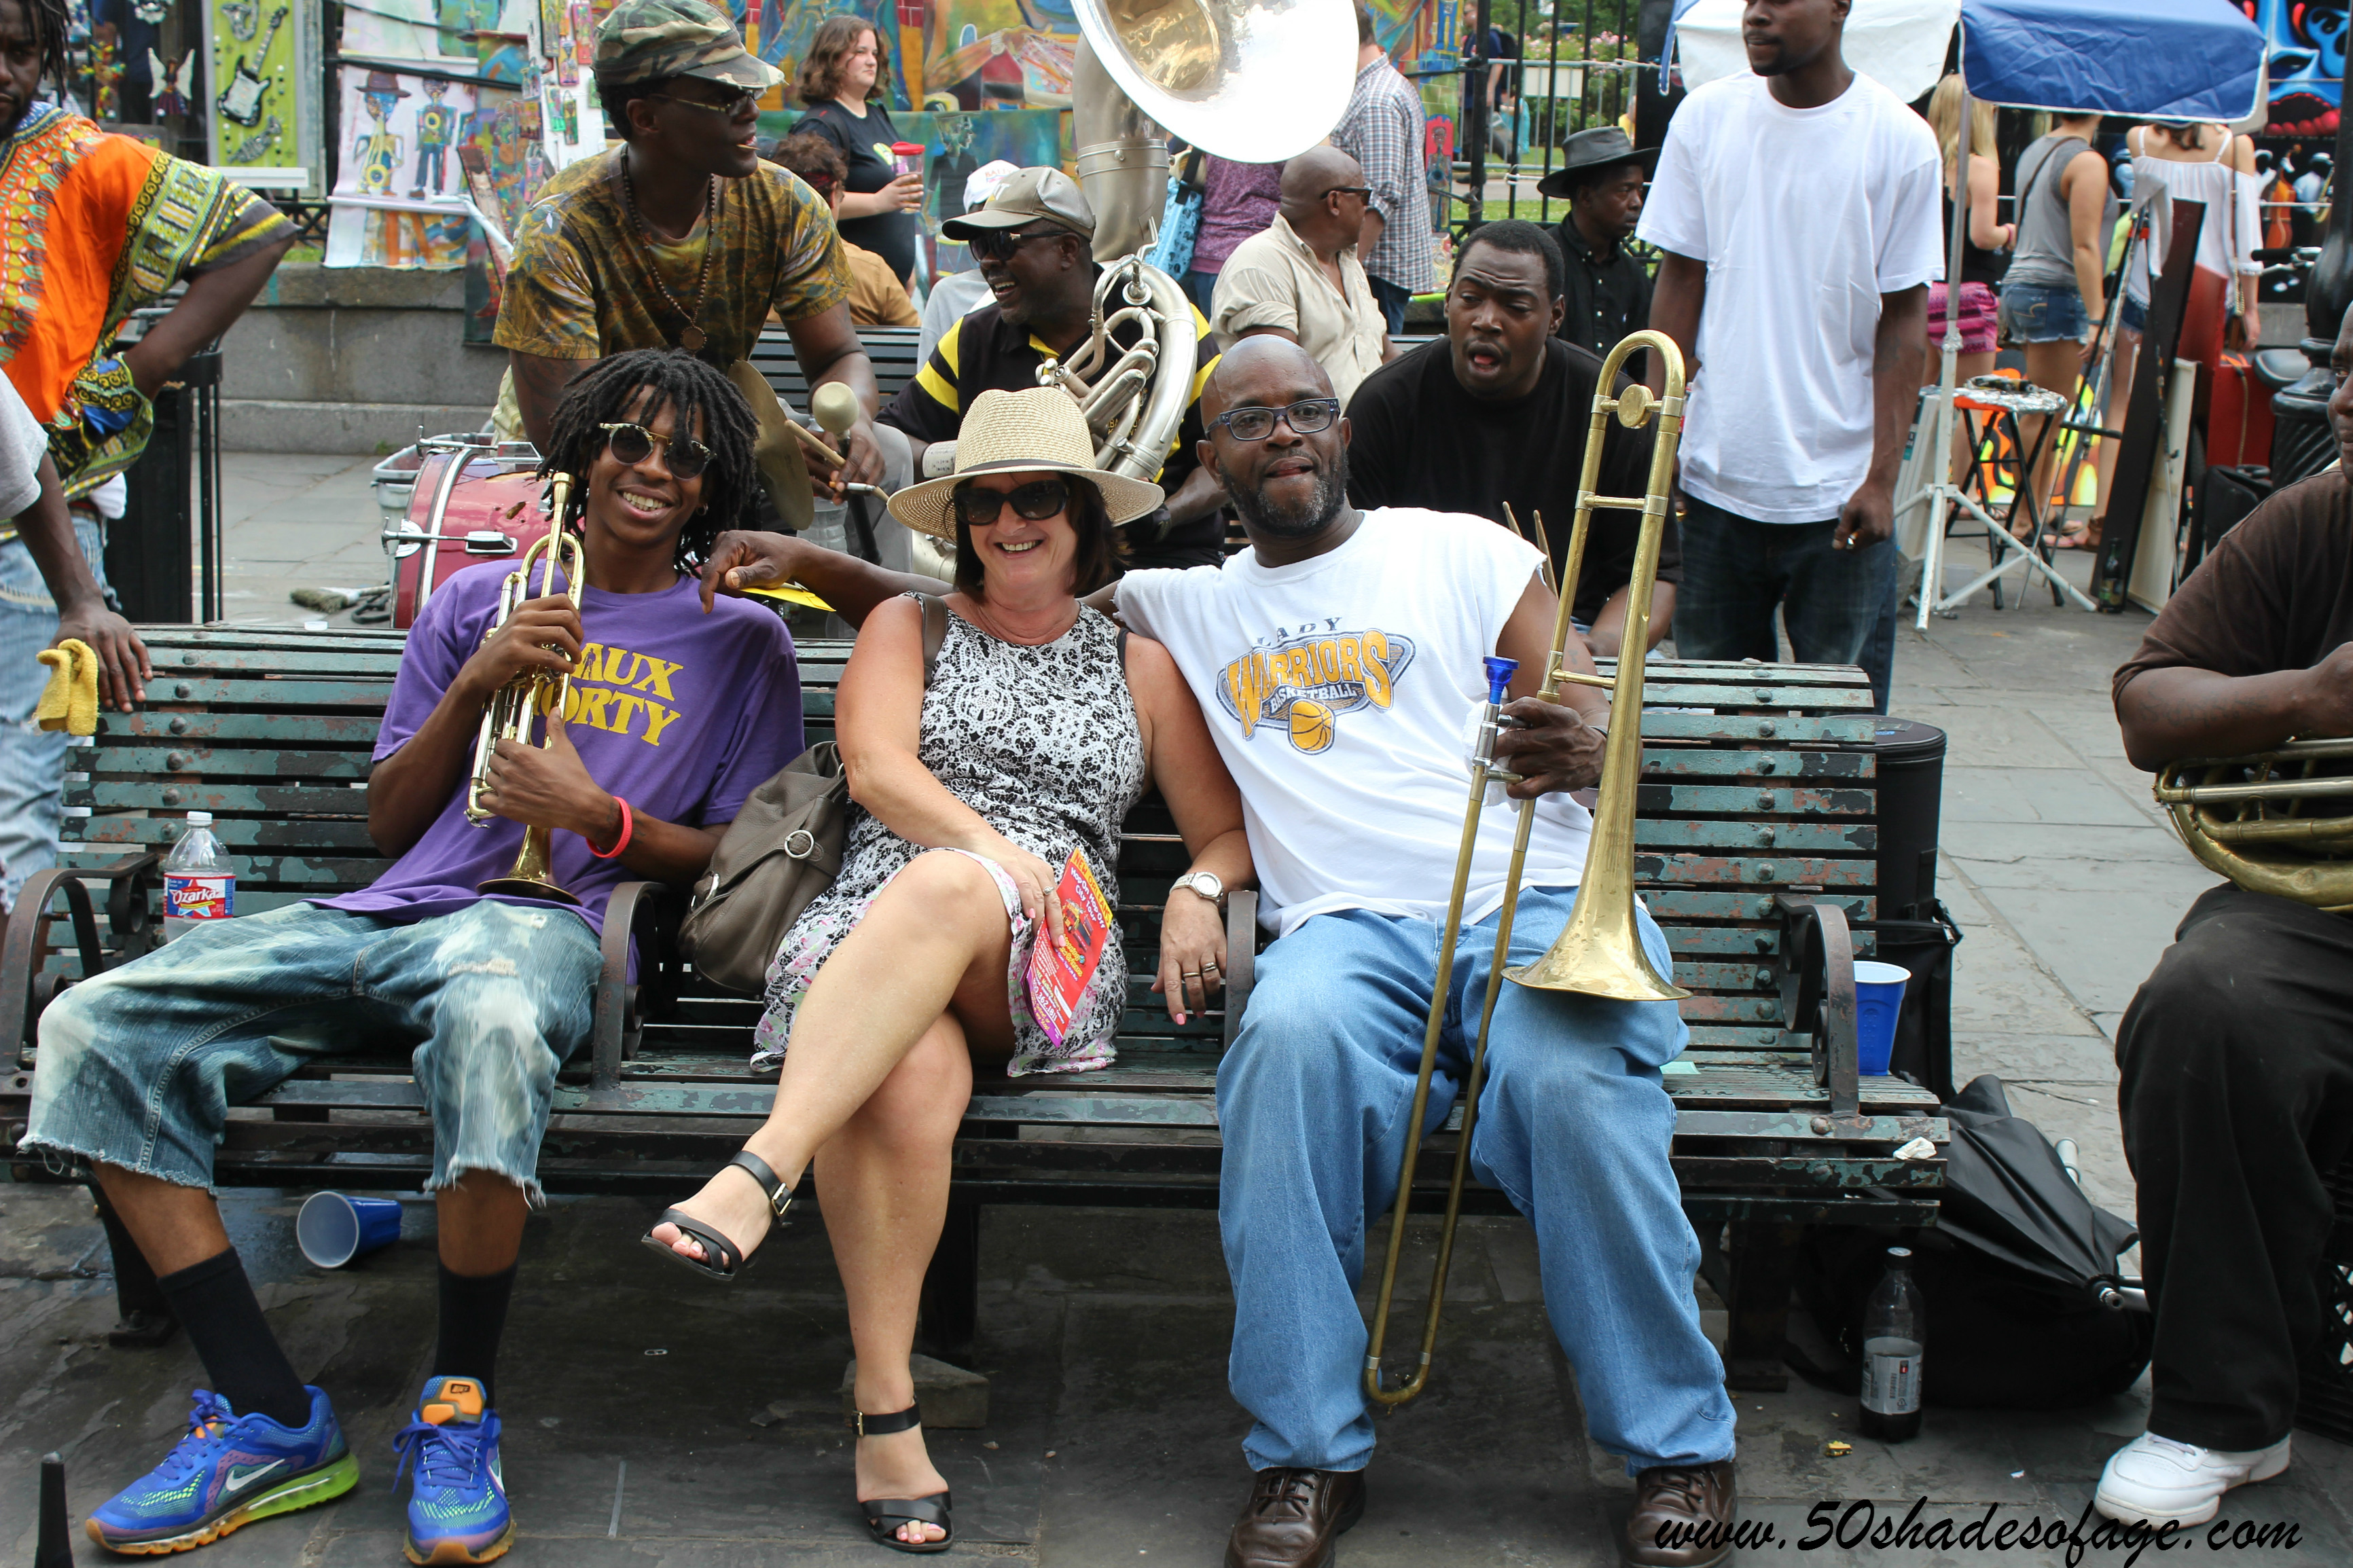 Getting amongst the Jazz on the streets of New Orleans